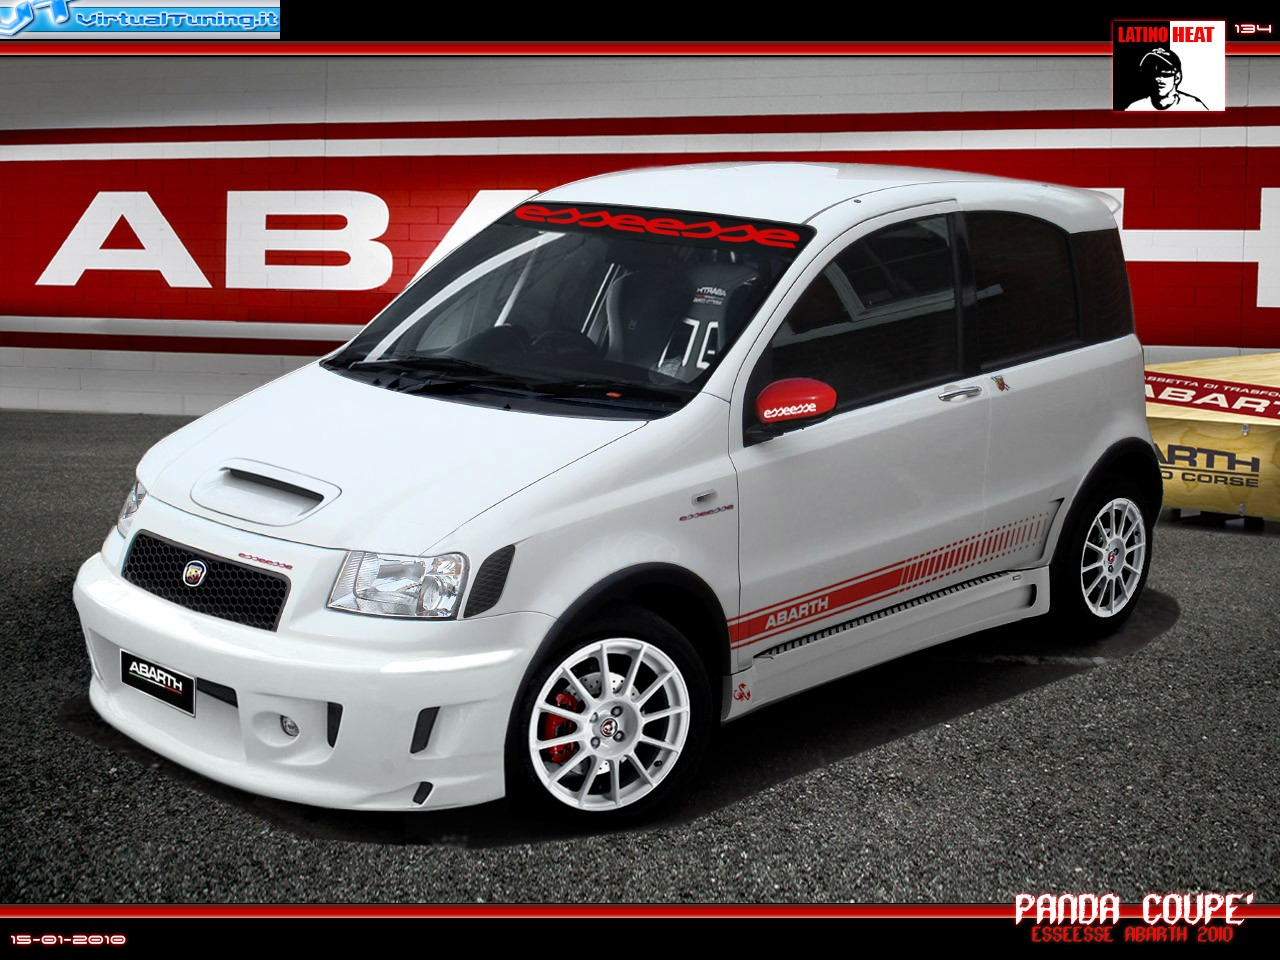 fiat panda cars news videos images websites wiki. Black Bedroom Furniture Sets. Home Design Ideas